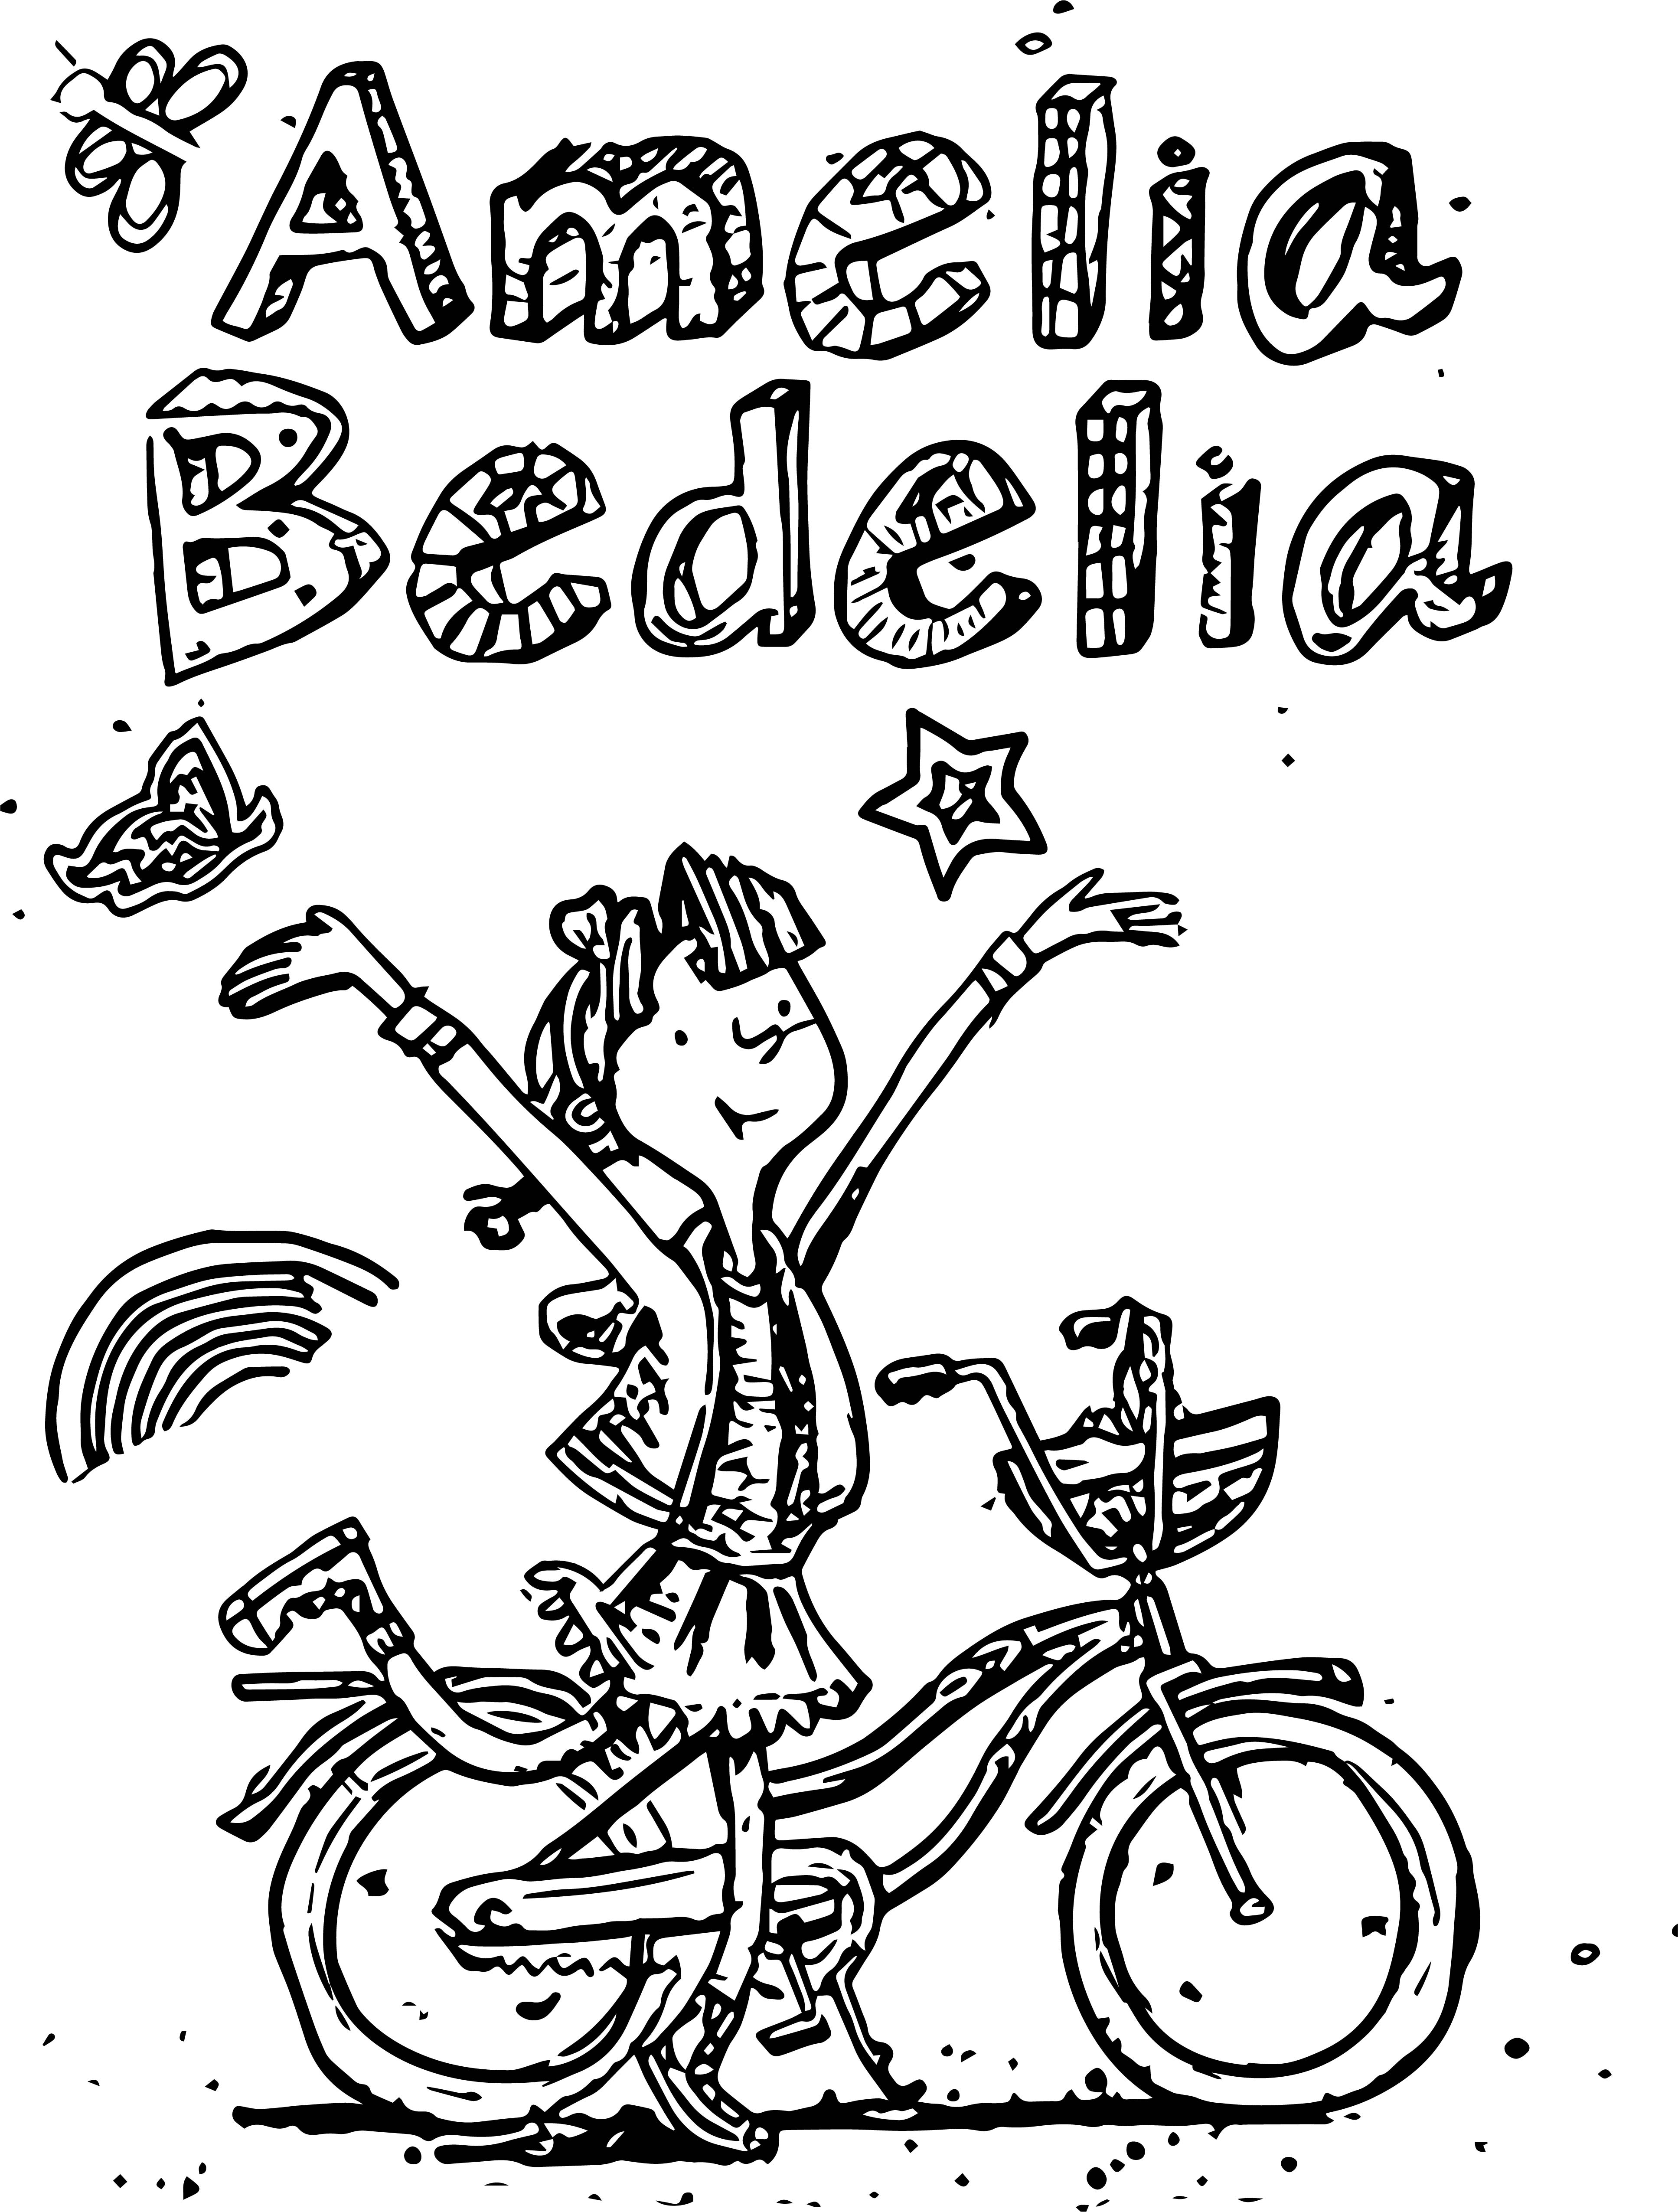 Uncategorized Amelia Bedelia Coloring Pages amelia bedelia drawing biycle coloring page wecoloringpage page